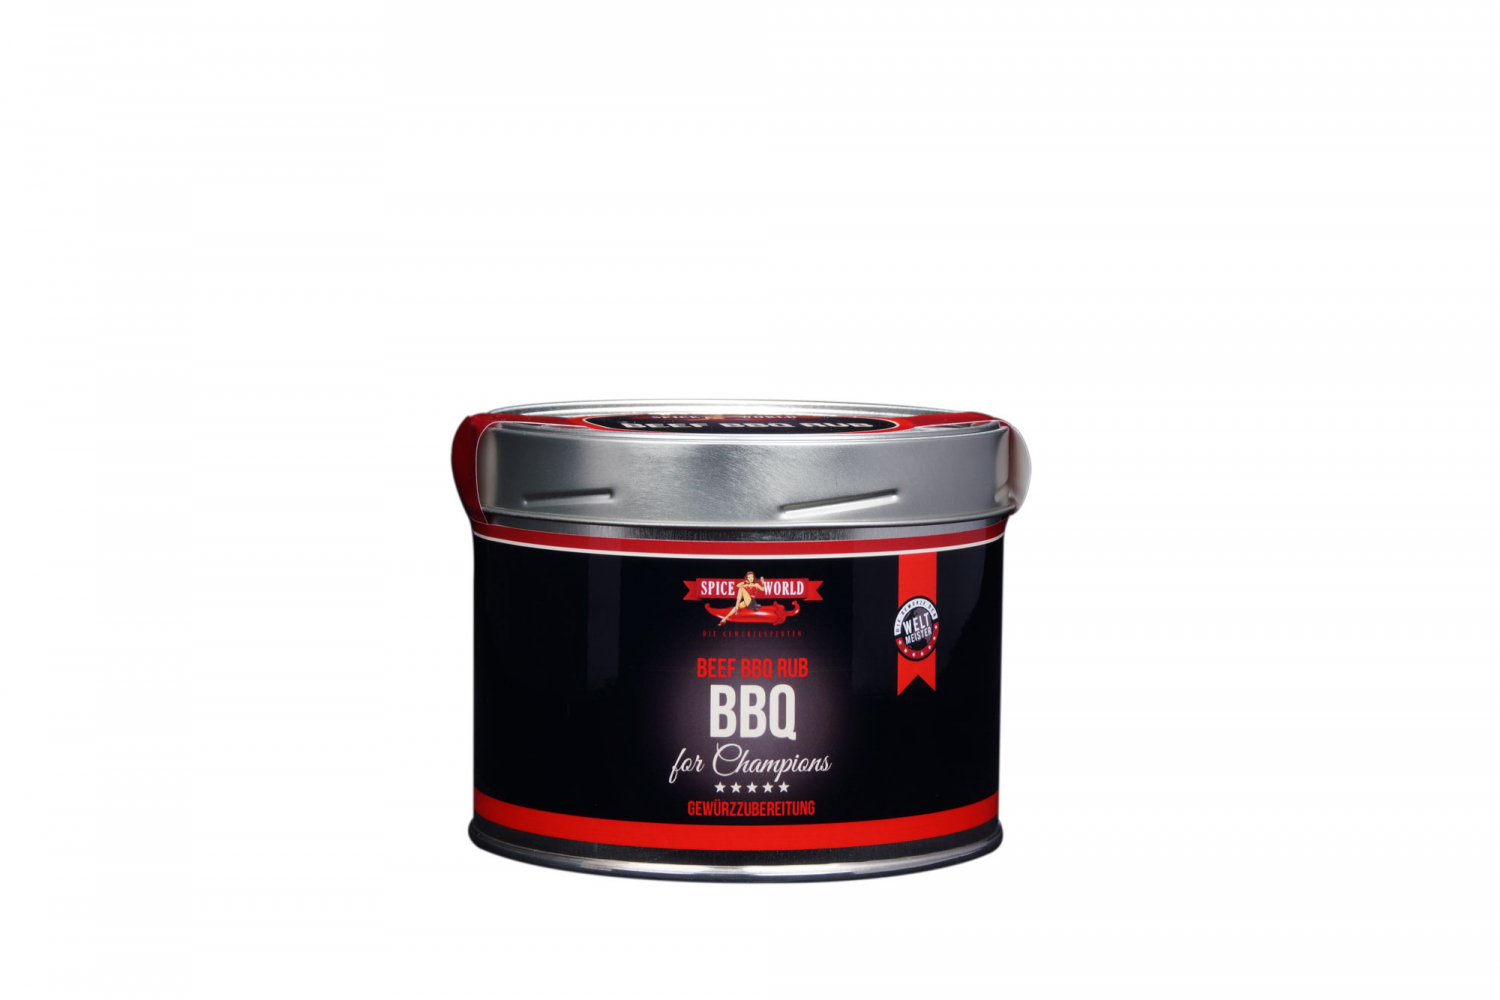 Barbecue-for-Champions - BBQ Beef-Rub, 550ml Gastro-Dose 550ml Gastro-Dose